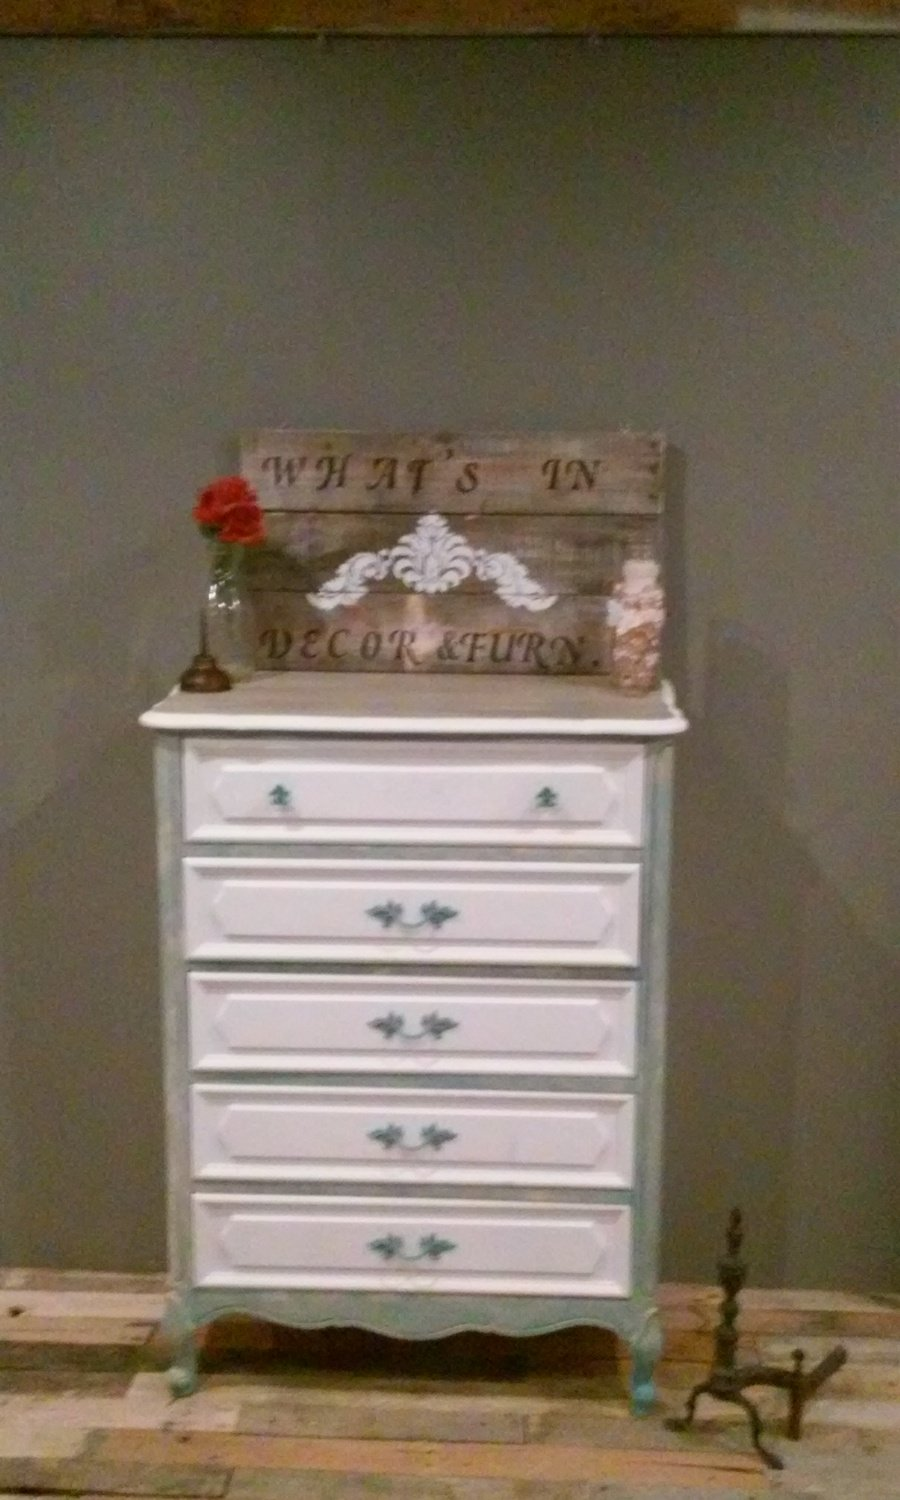 Henry Link Wicker Bedroom Furniture #31: I Have Henry Link Girls Bedroom Furniture I Would Like To Sell And